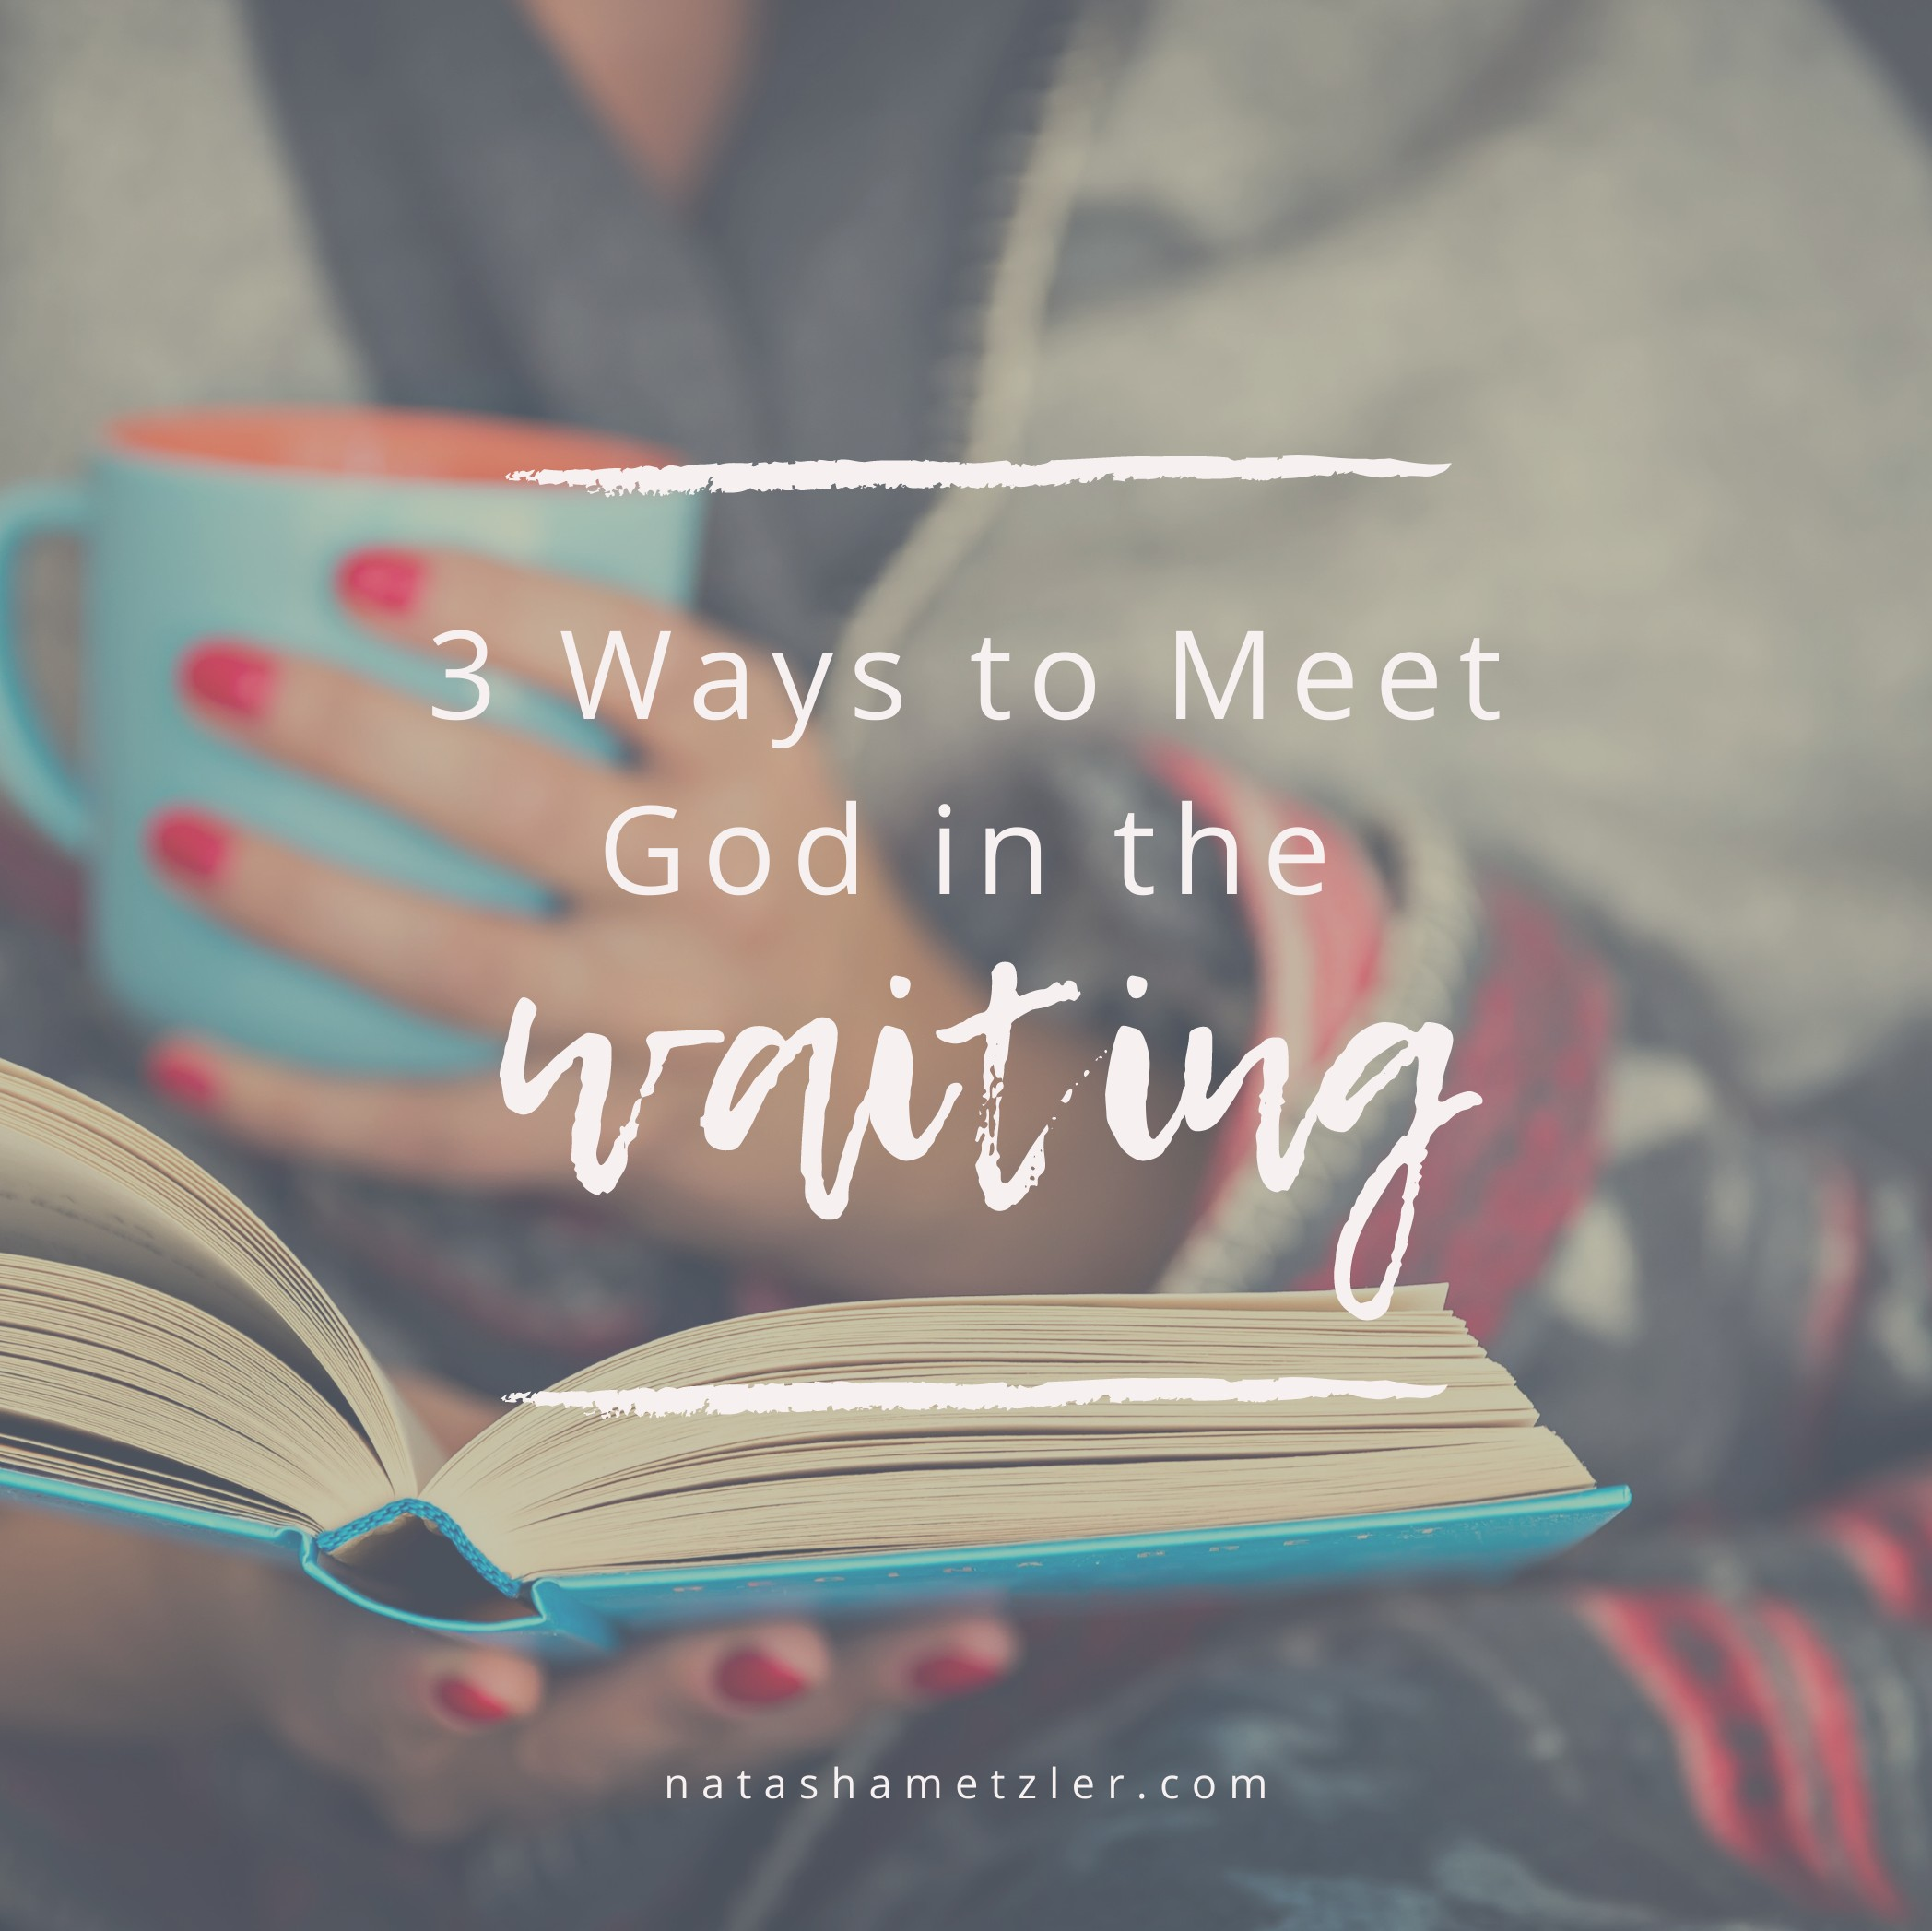 3 Ways to Meet God in the Waiting